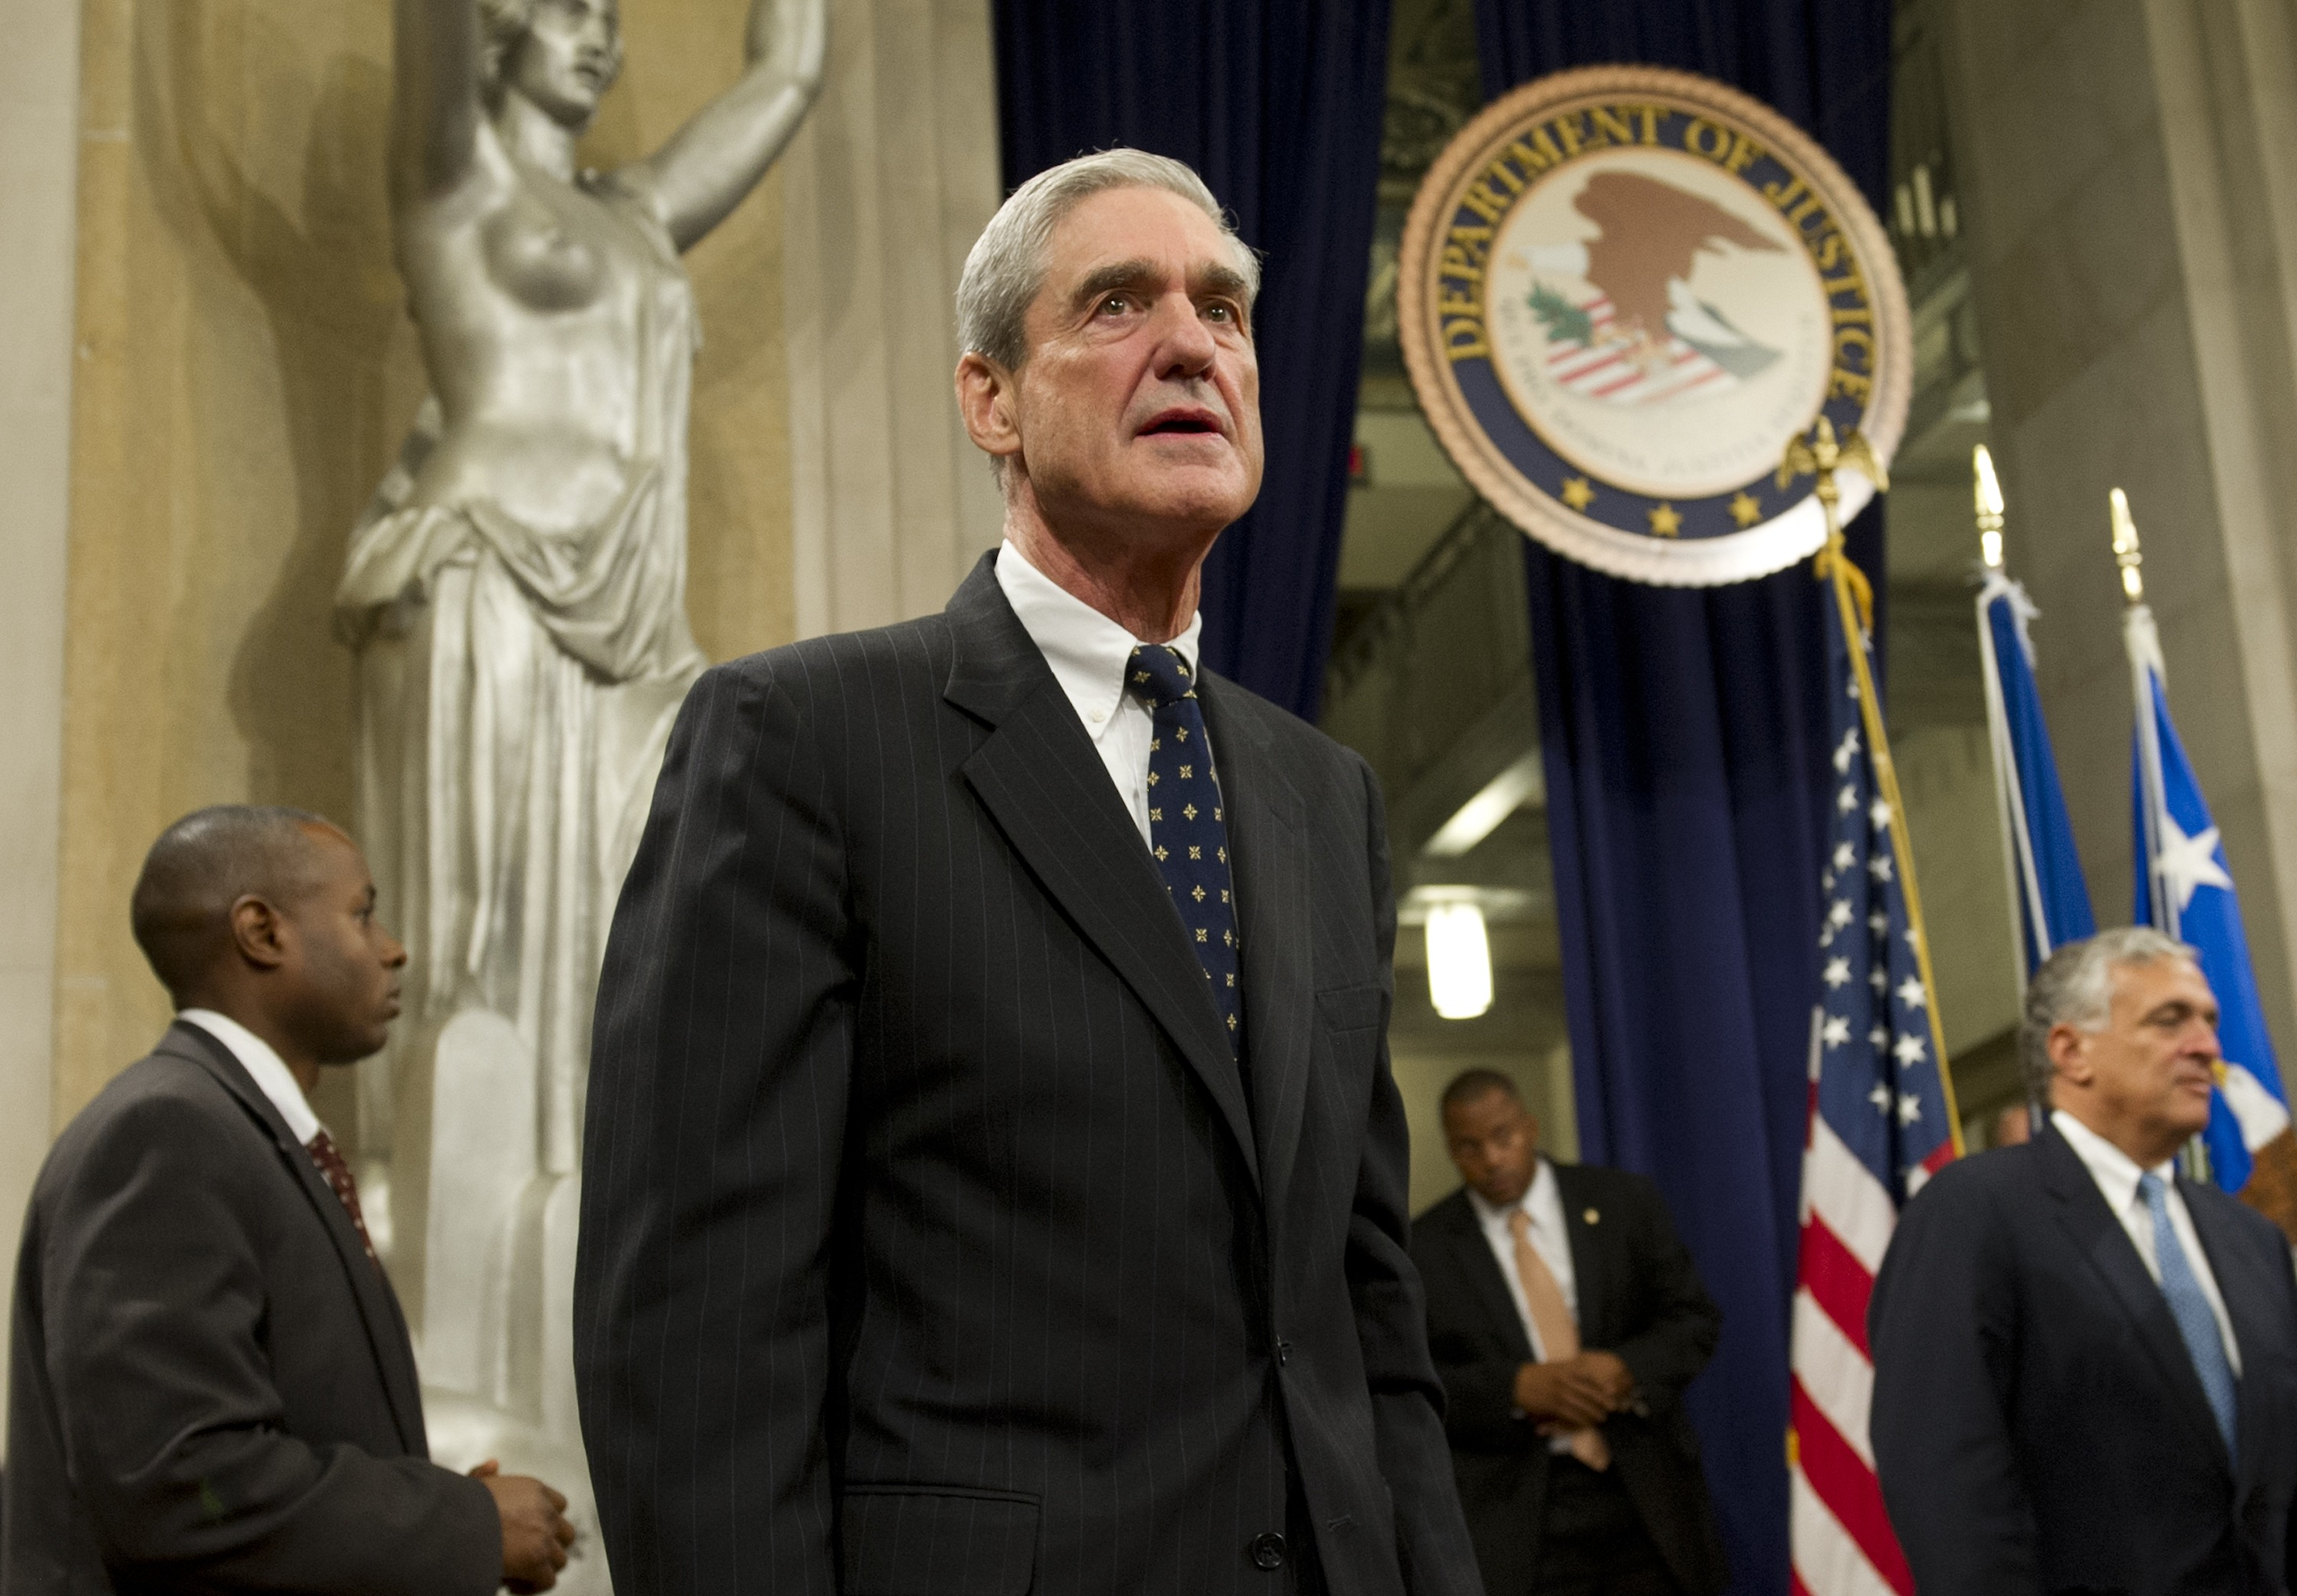 Former FBI director Robert Mueller at the Department of Justice on Aug. 1, 2013. (AFP Photo)